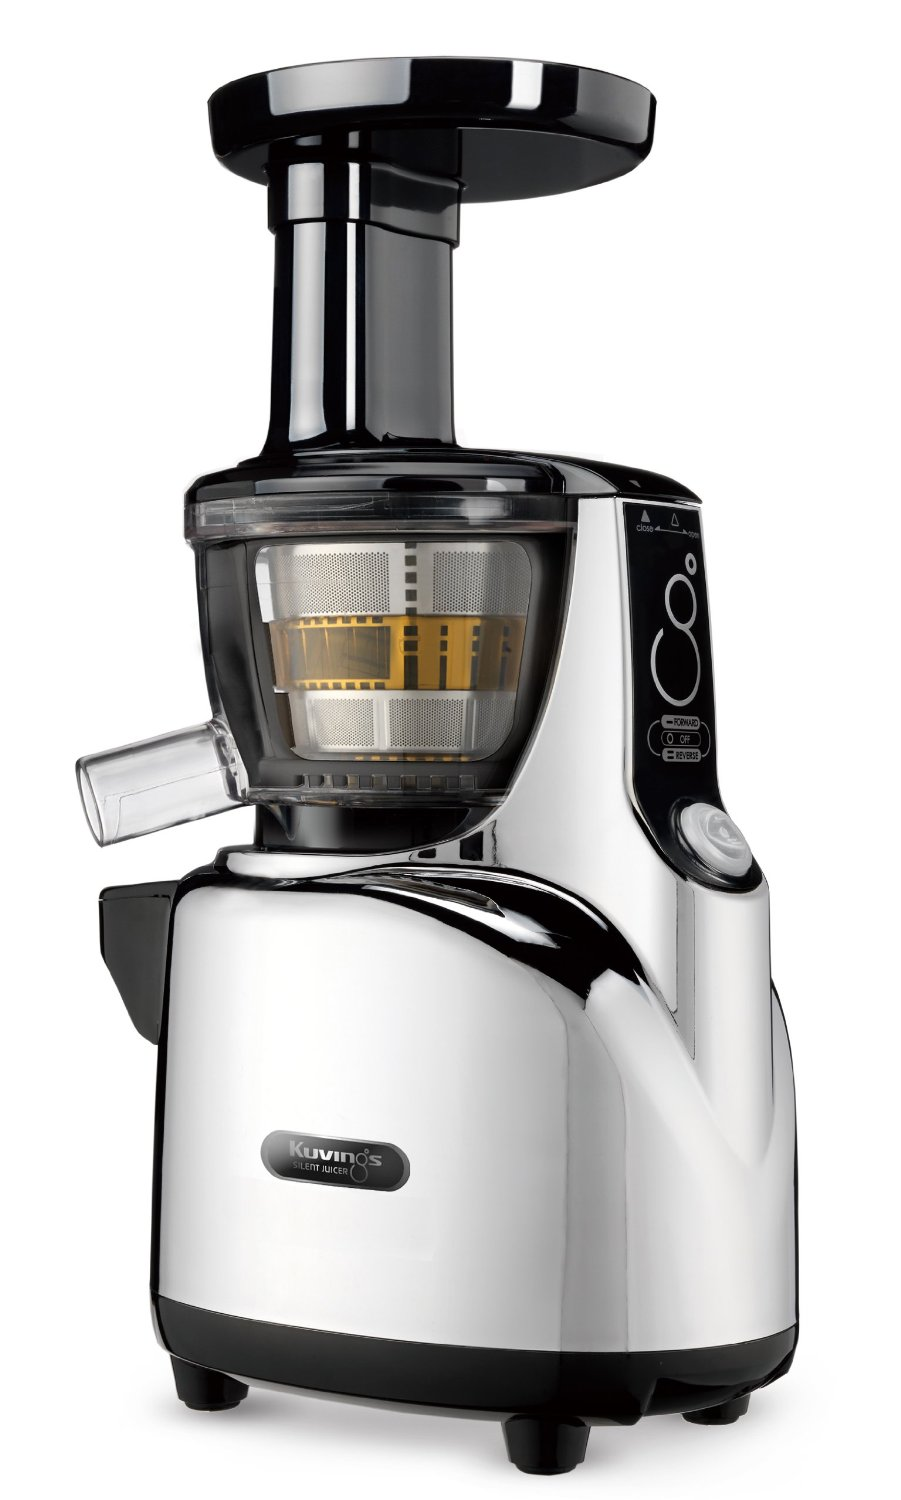 Top Masticating Juicer Reviews : 5 Best Kuvings Juicer Reviews UPDATED: 2018 The Home Savant